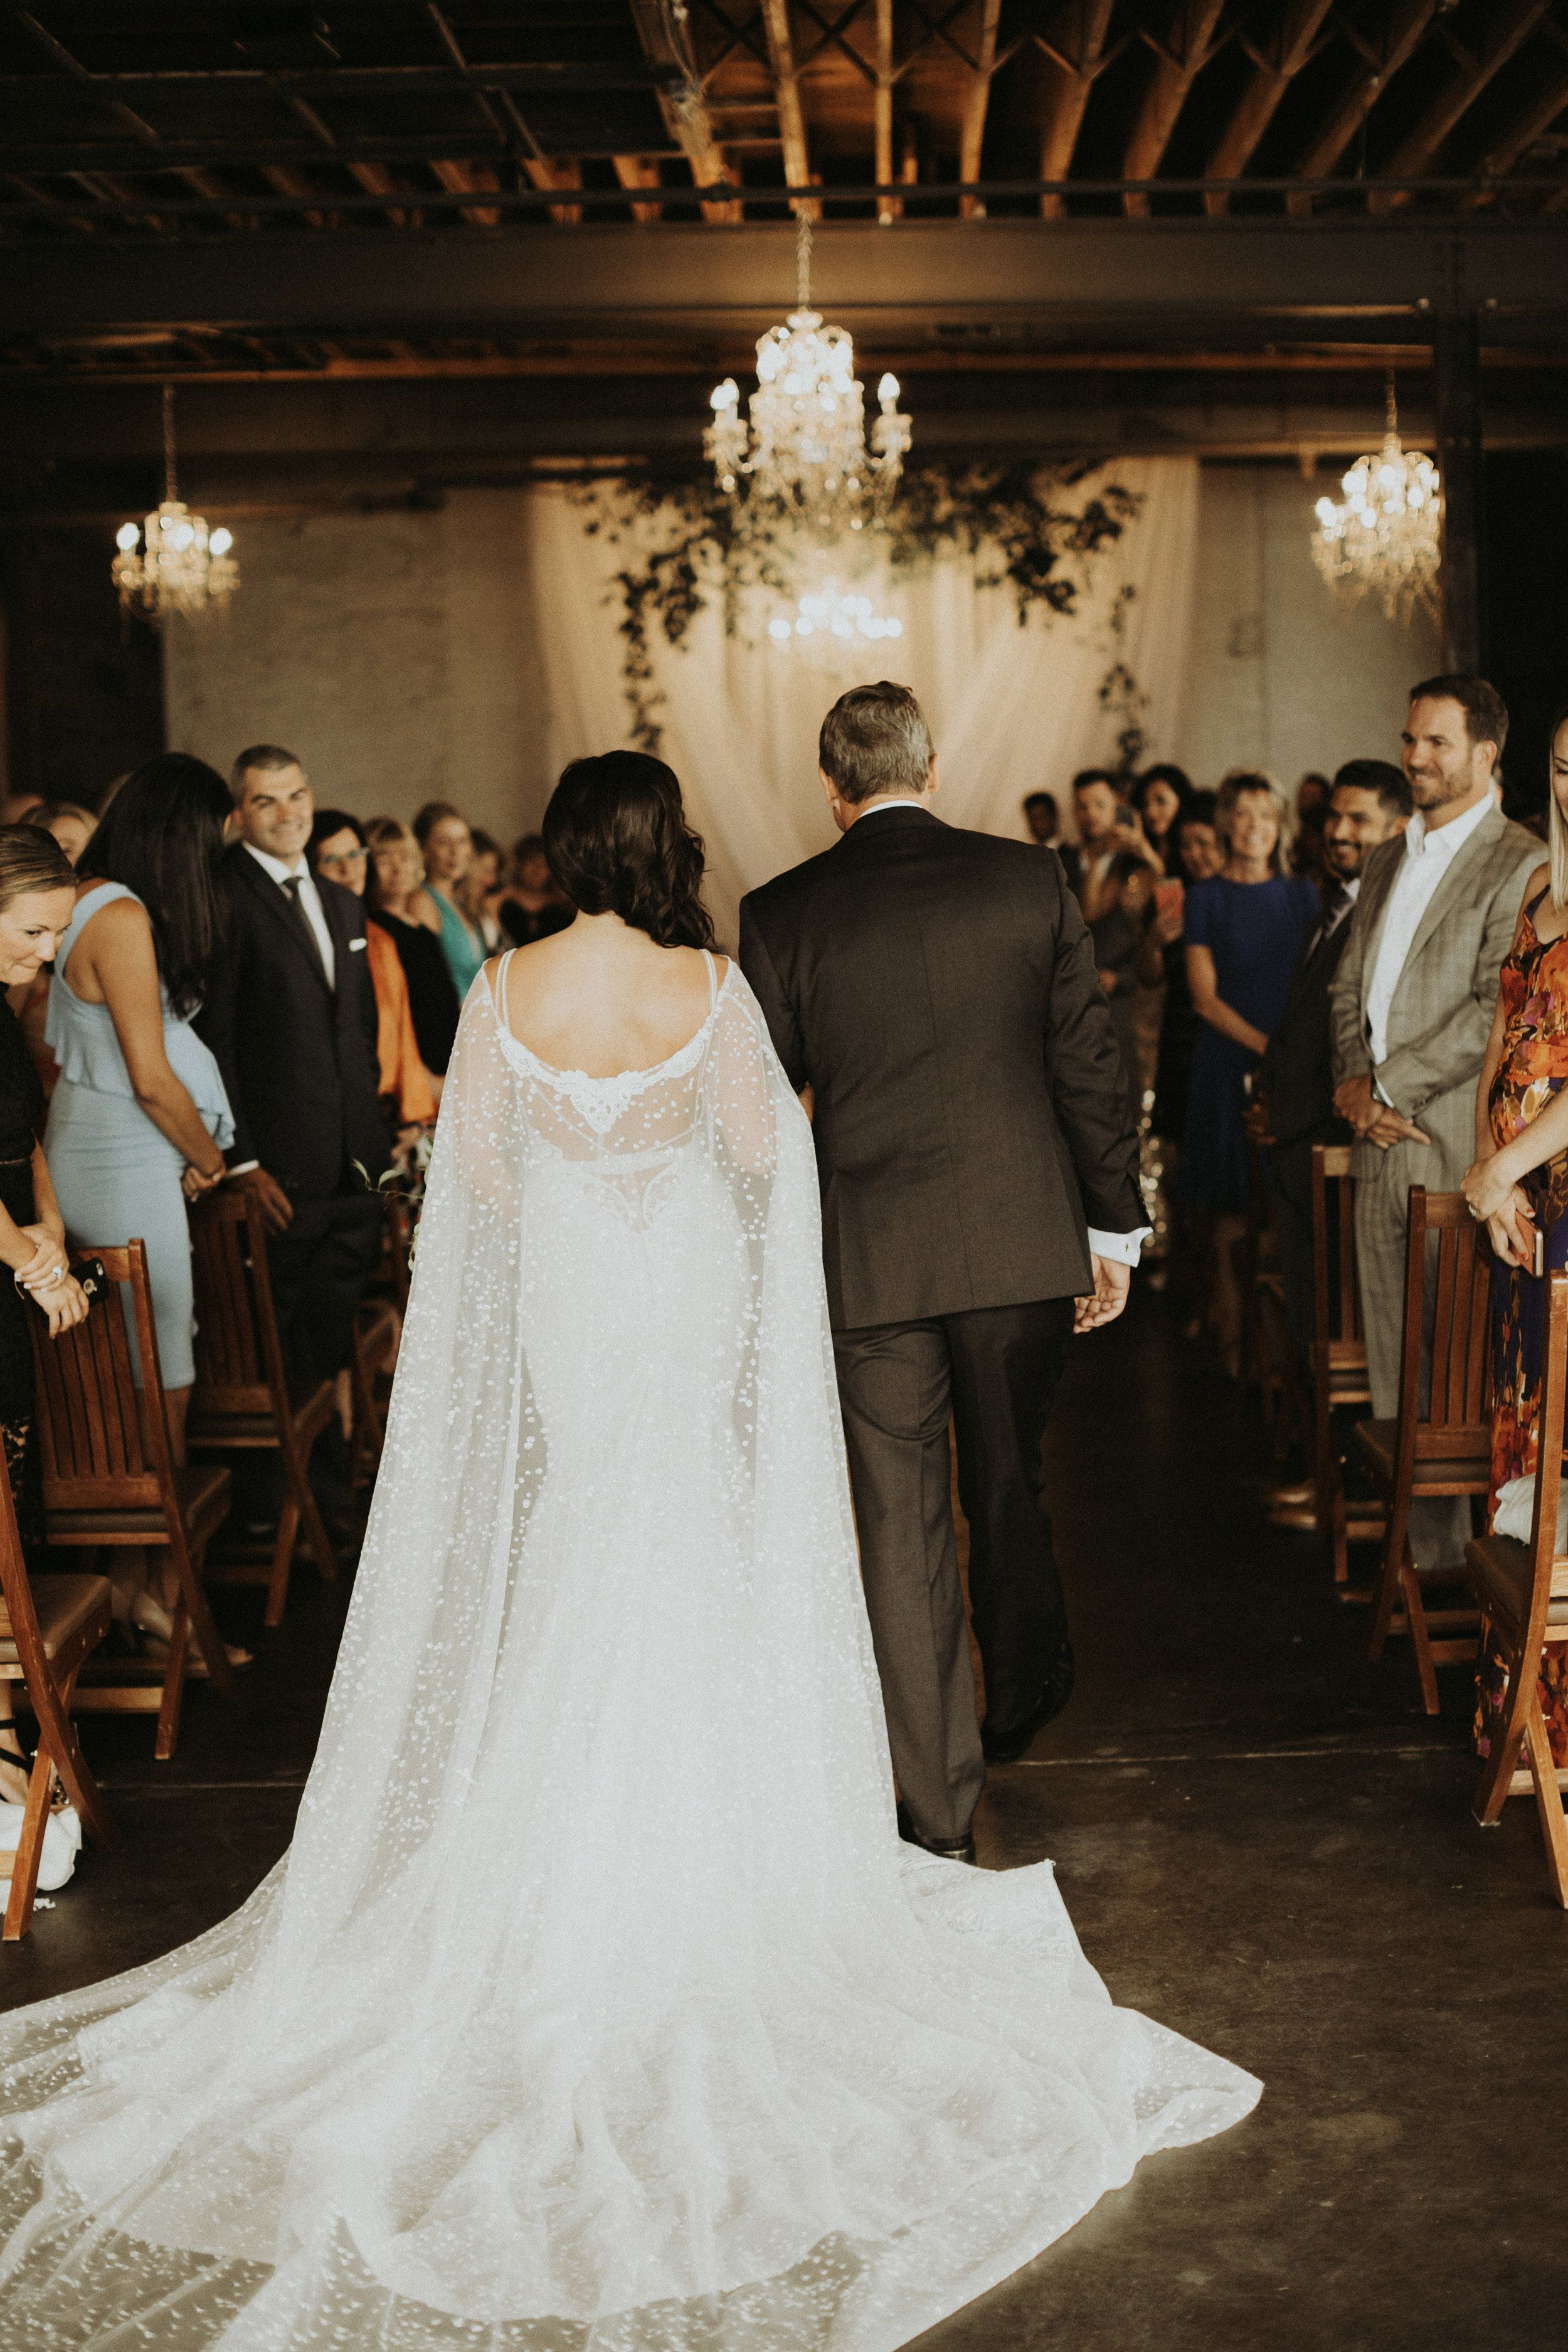 Berta Bridal Gown And Cape Anna Bé Real Bride At Moss In Denver Co